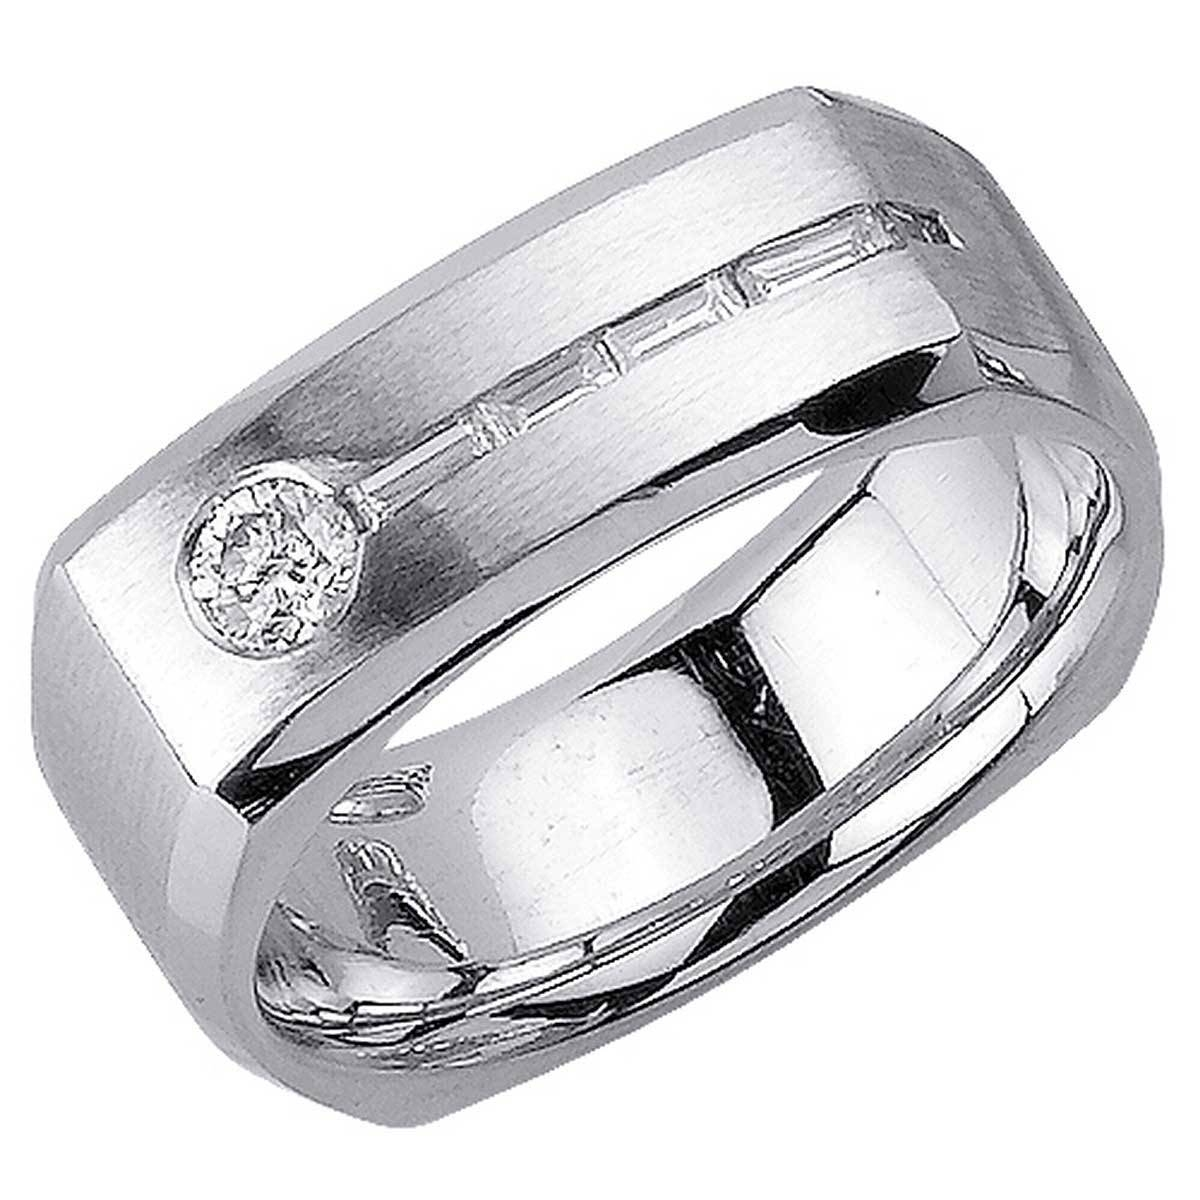 55ct Tcw 14k White Gold Flat Unique Band 8mm 3002492 – Shop At With Newest Mens Flat Wedding Bands (View 13 of 15)